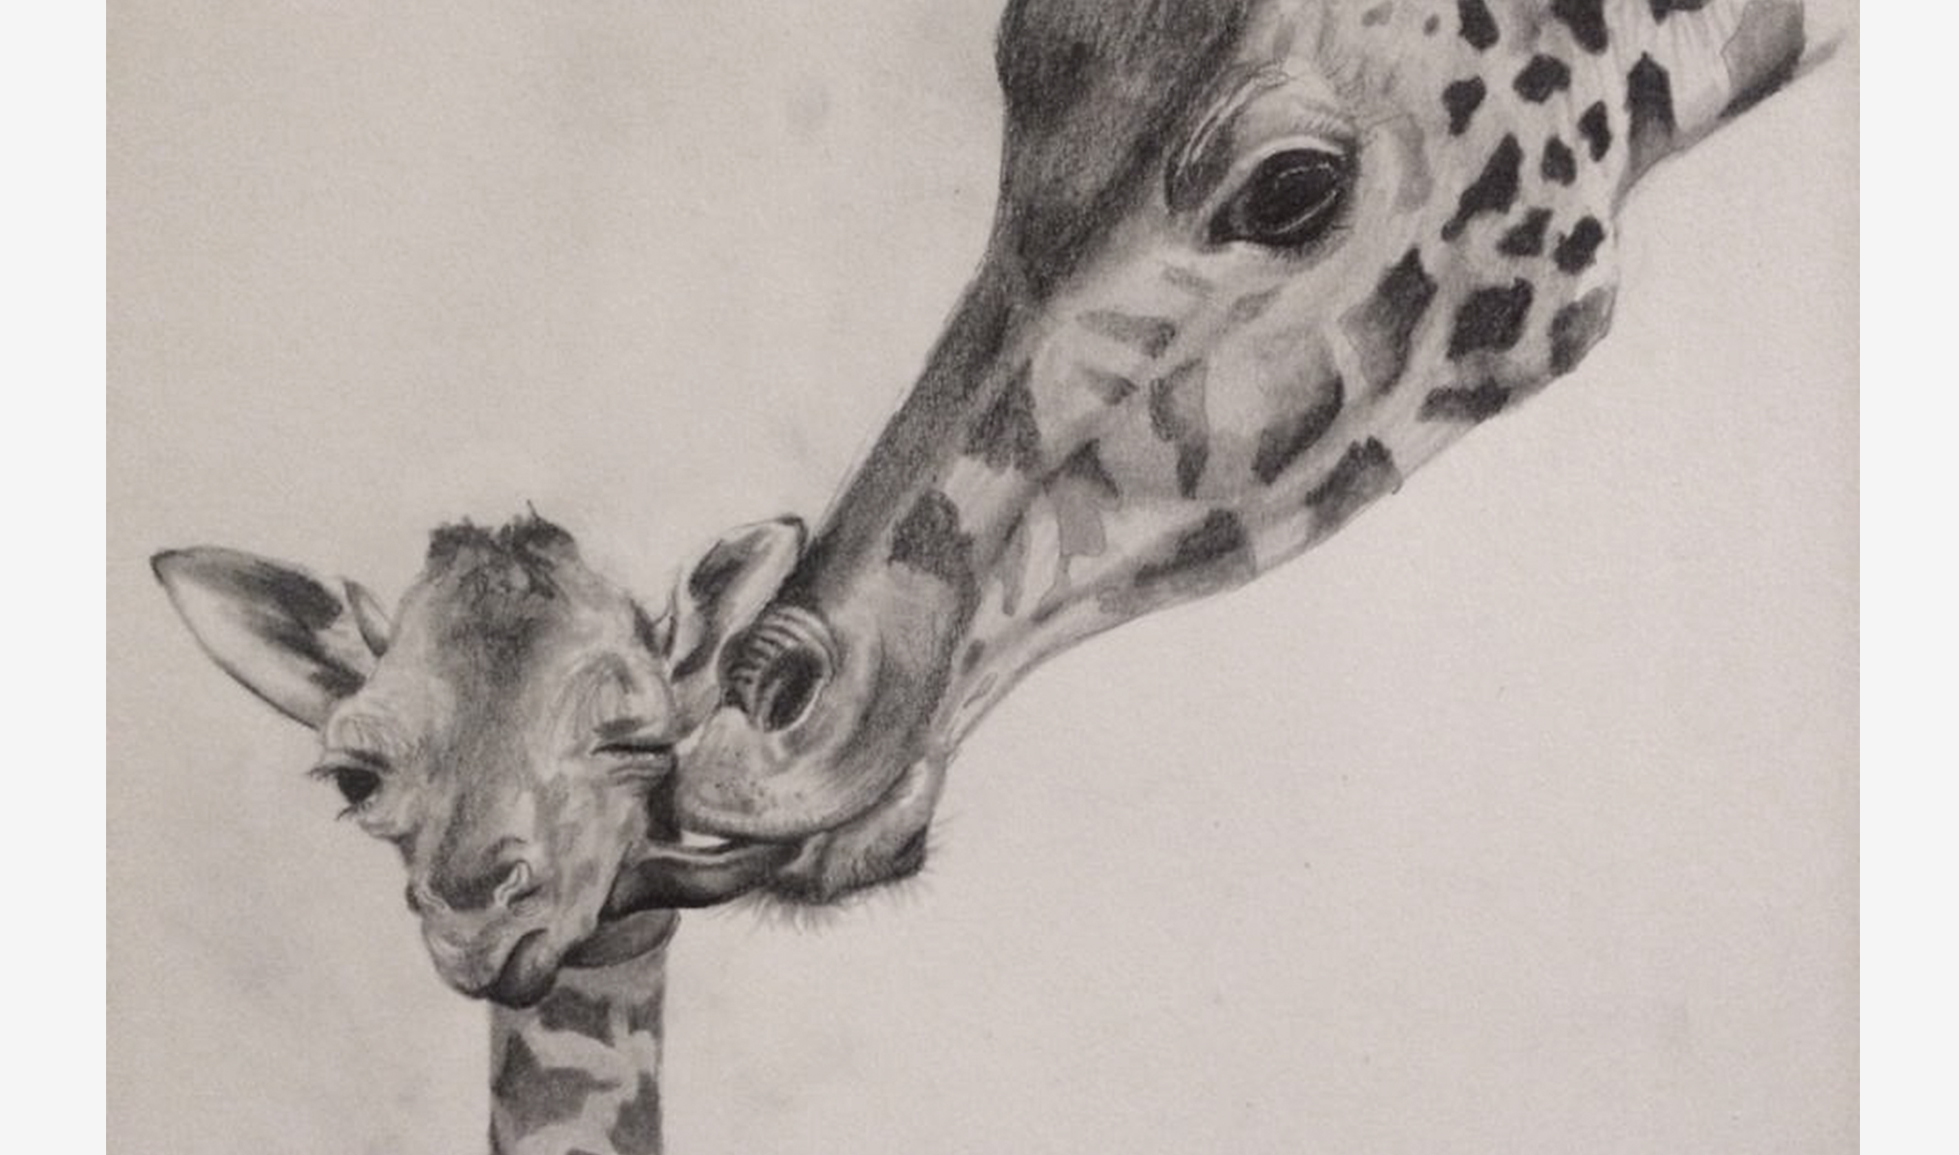 ART_Pencil_Giraffes